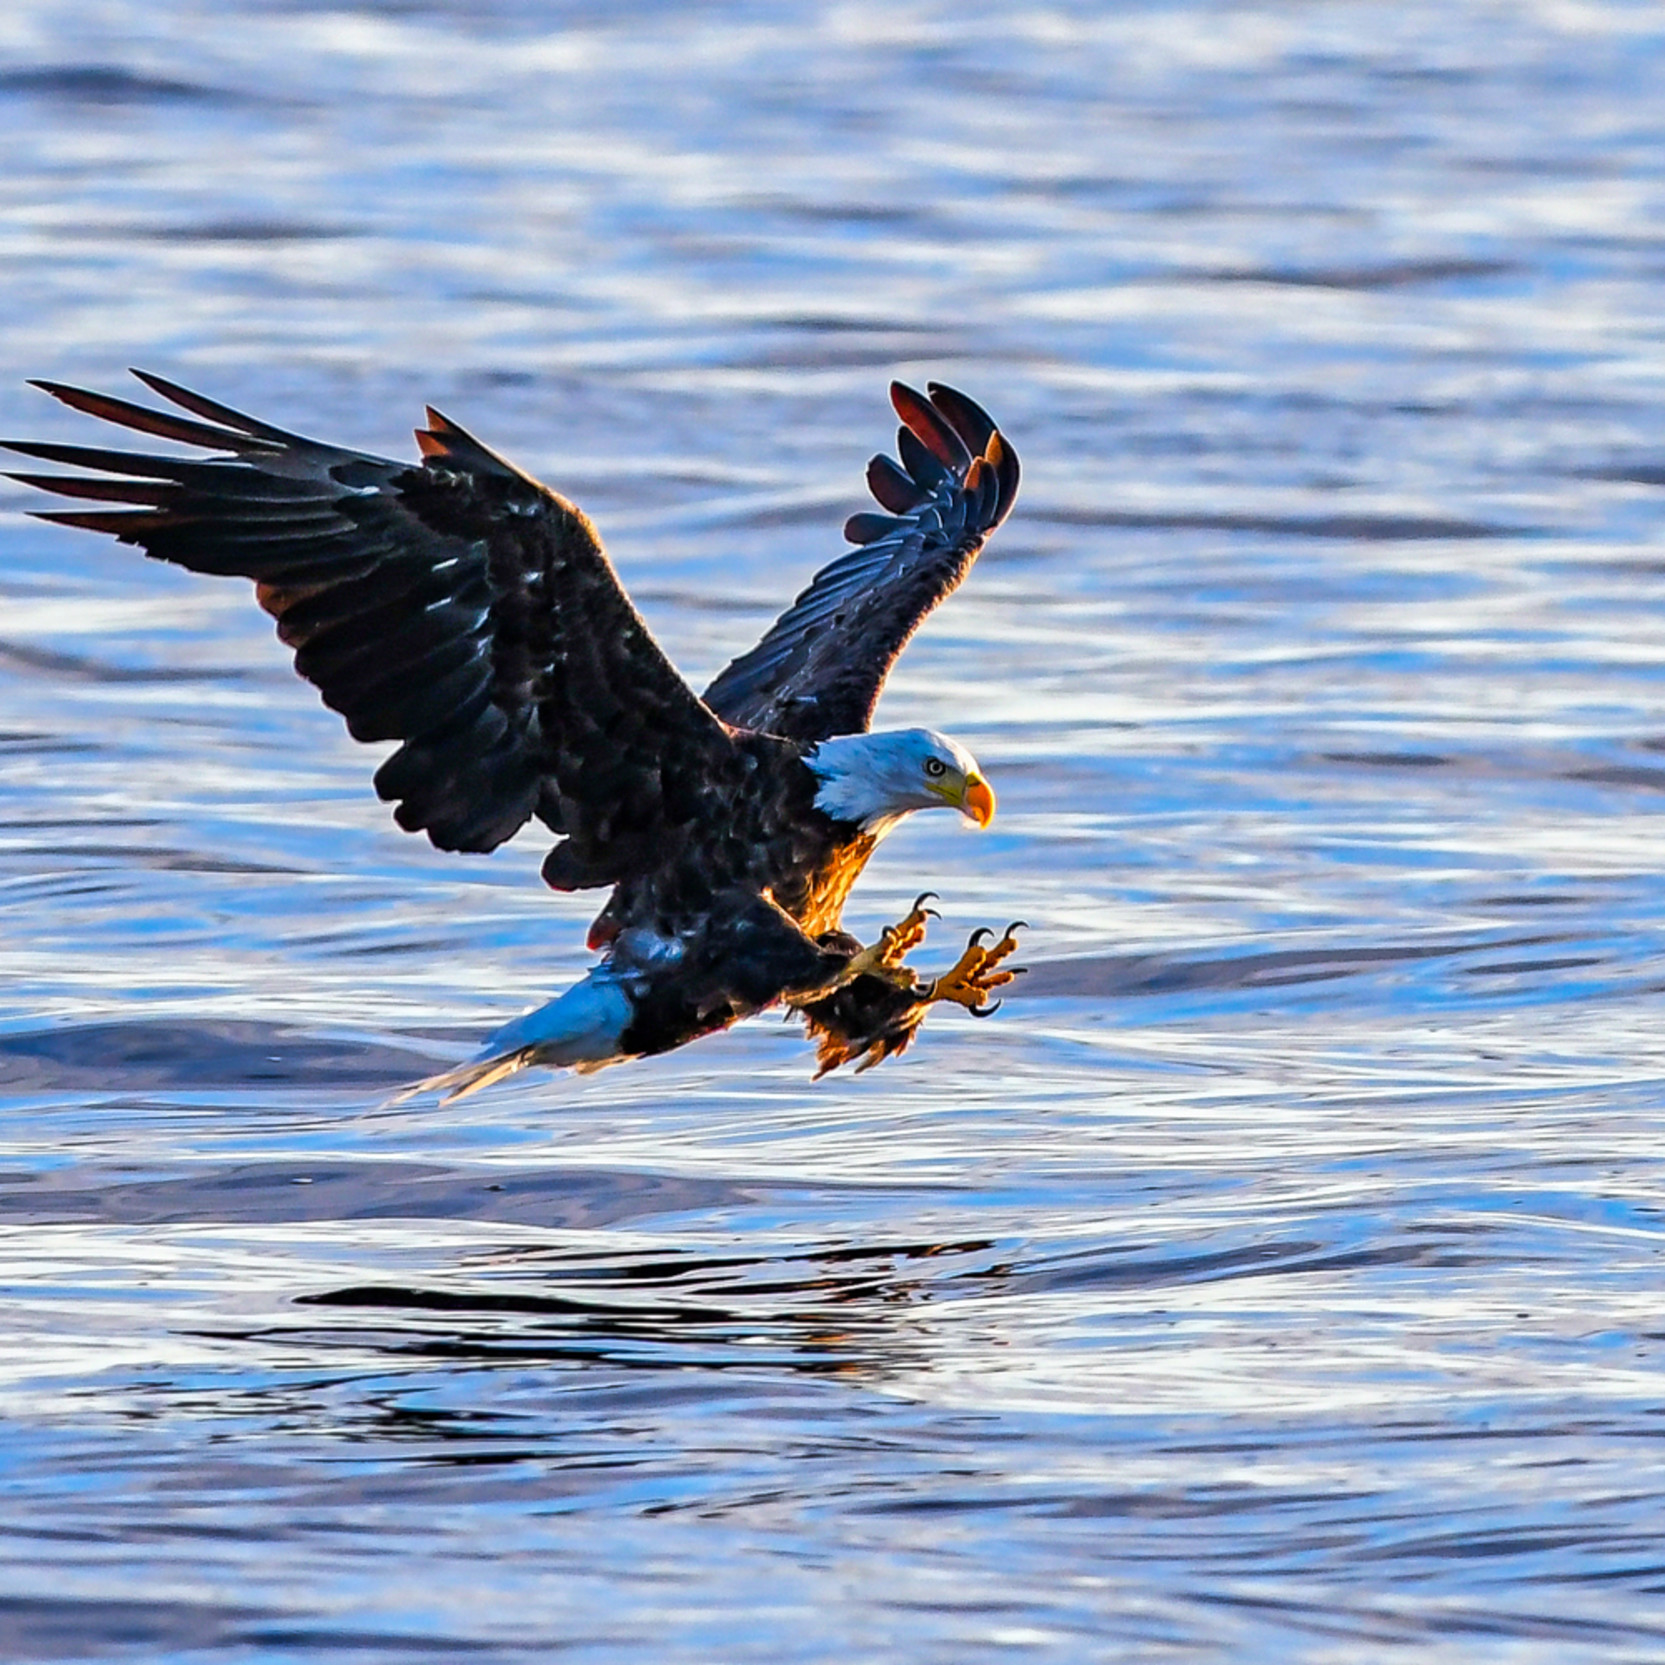 Andy crawford photography eagle catching fish 3 jthjxc